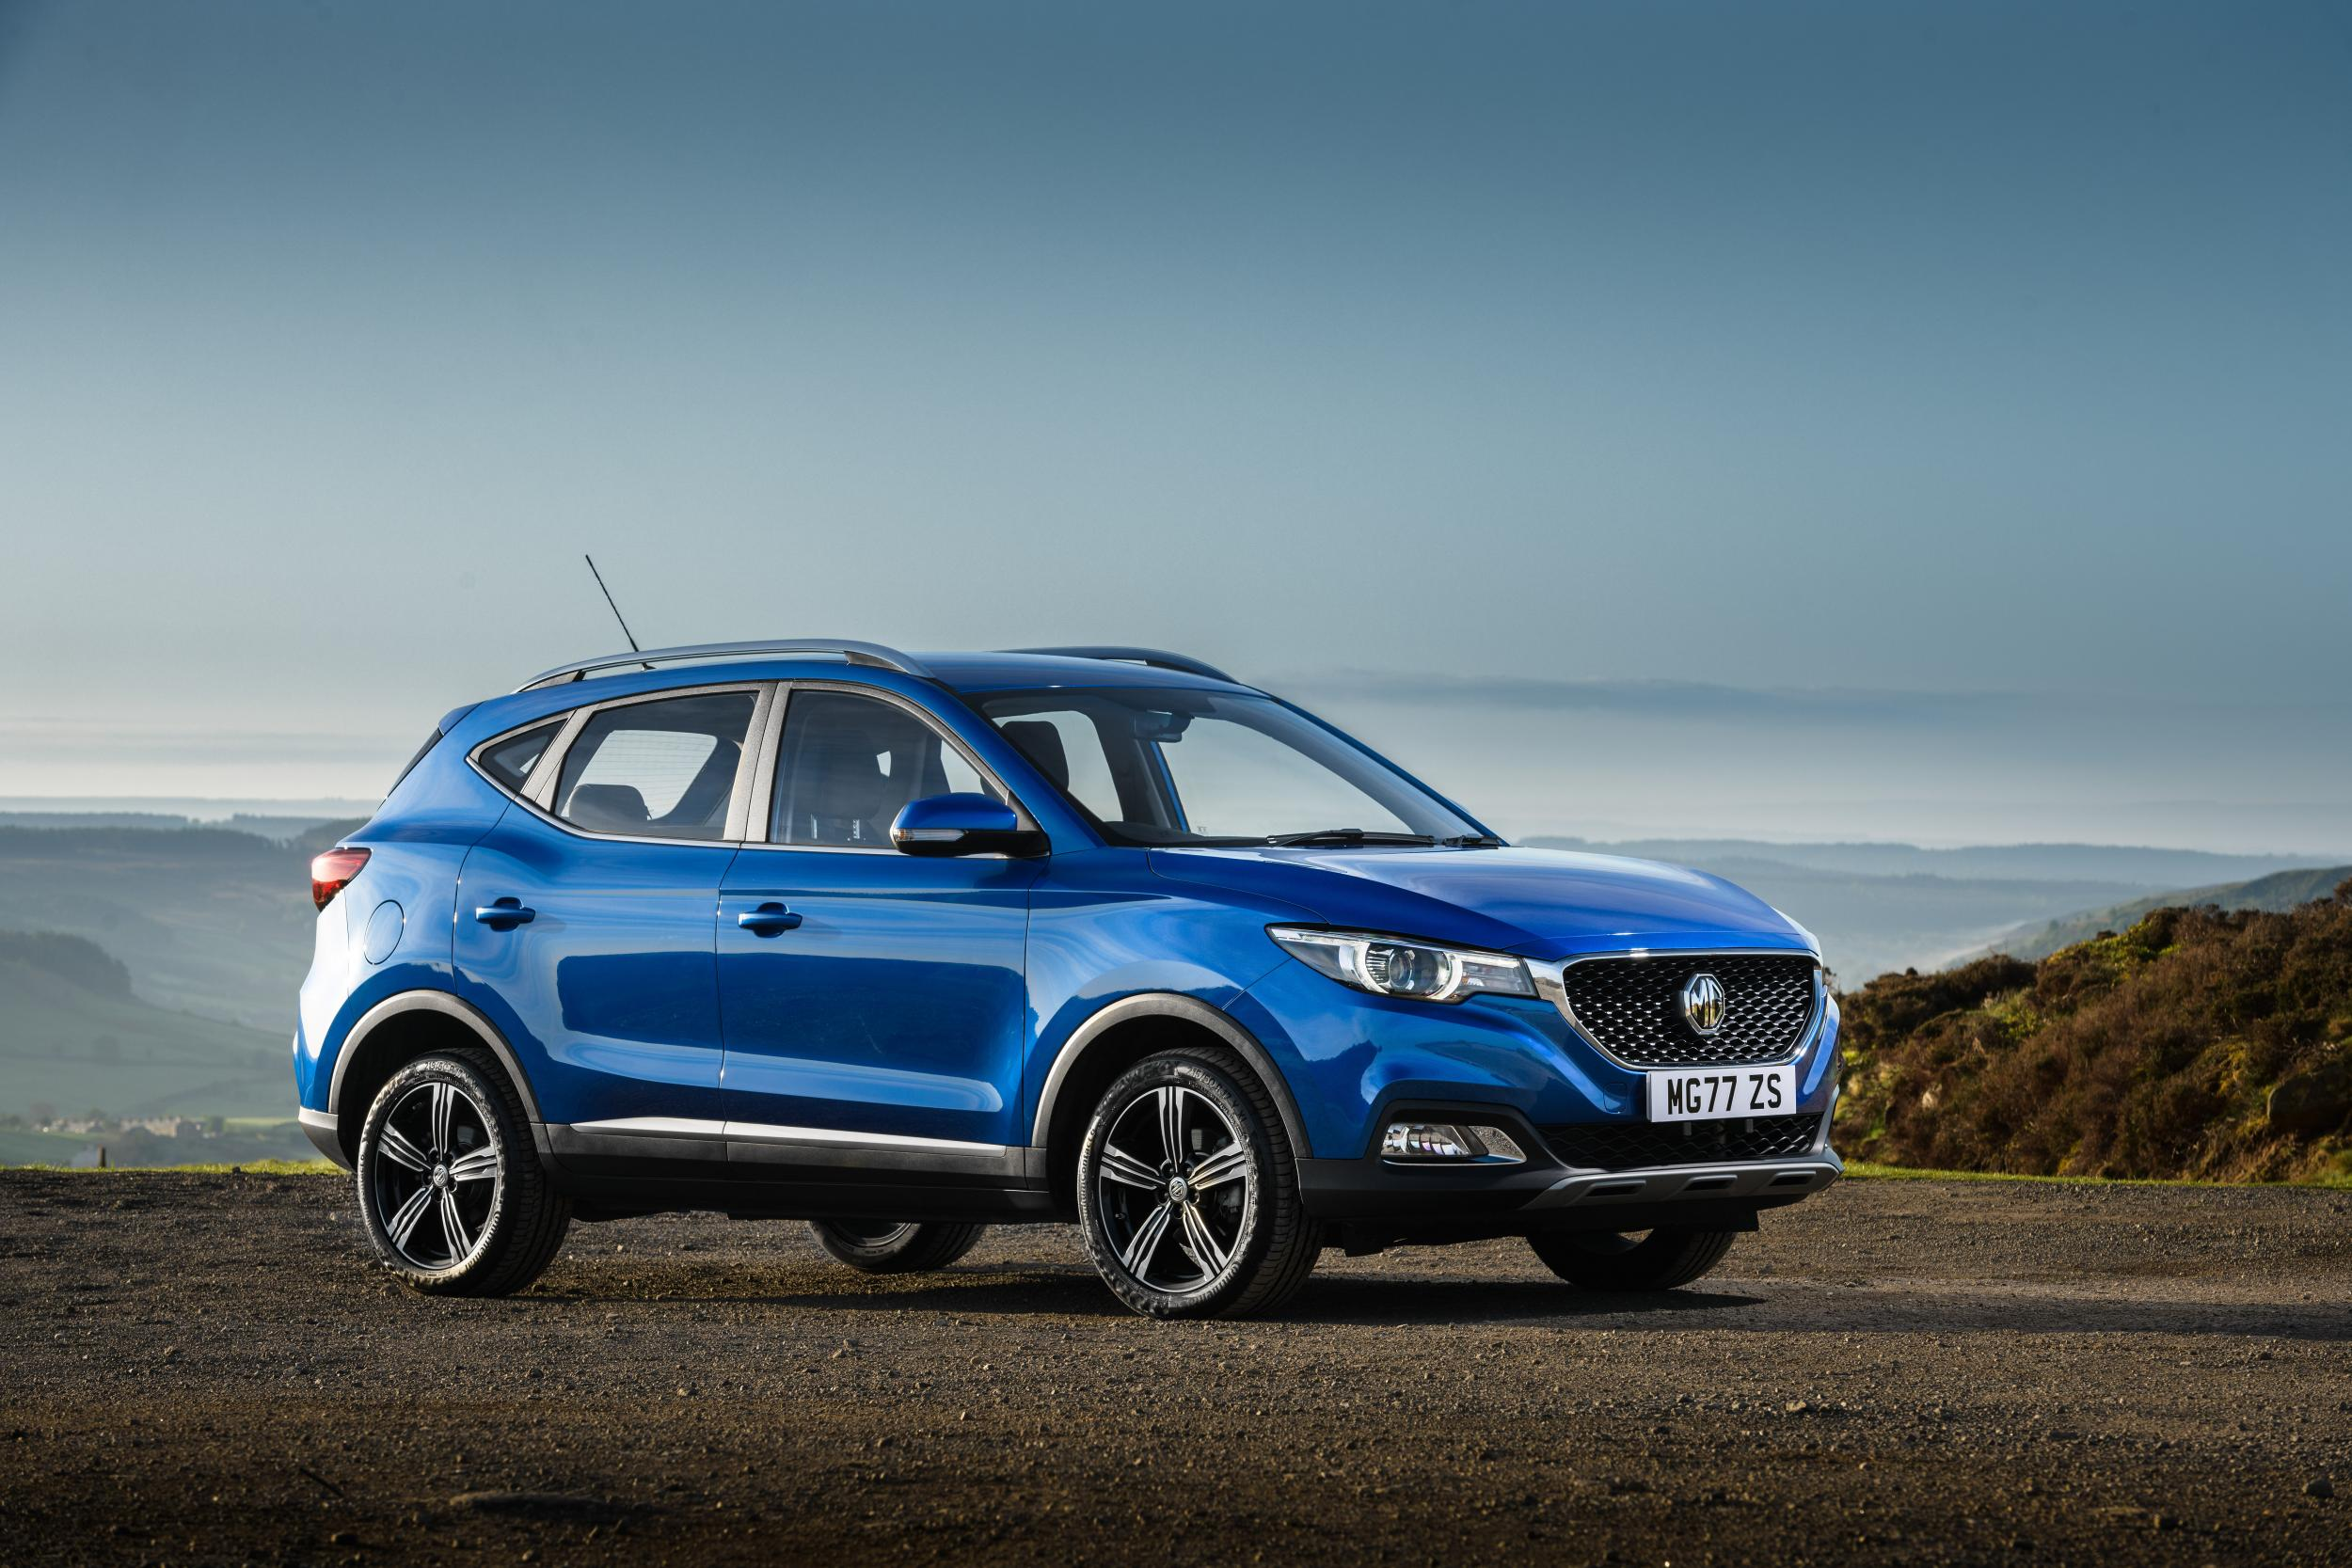 Mg Zs Review A Reasonably Priced Compact Suv But A Bit Generic